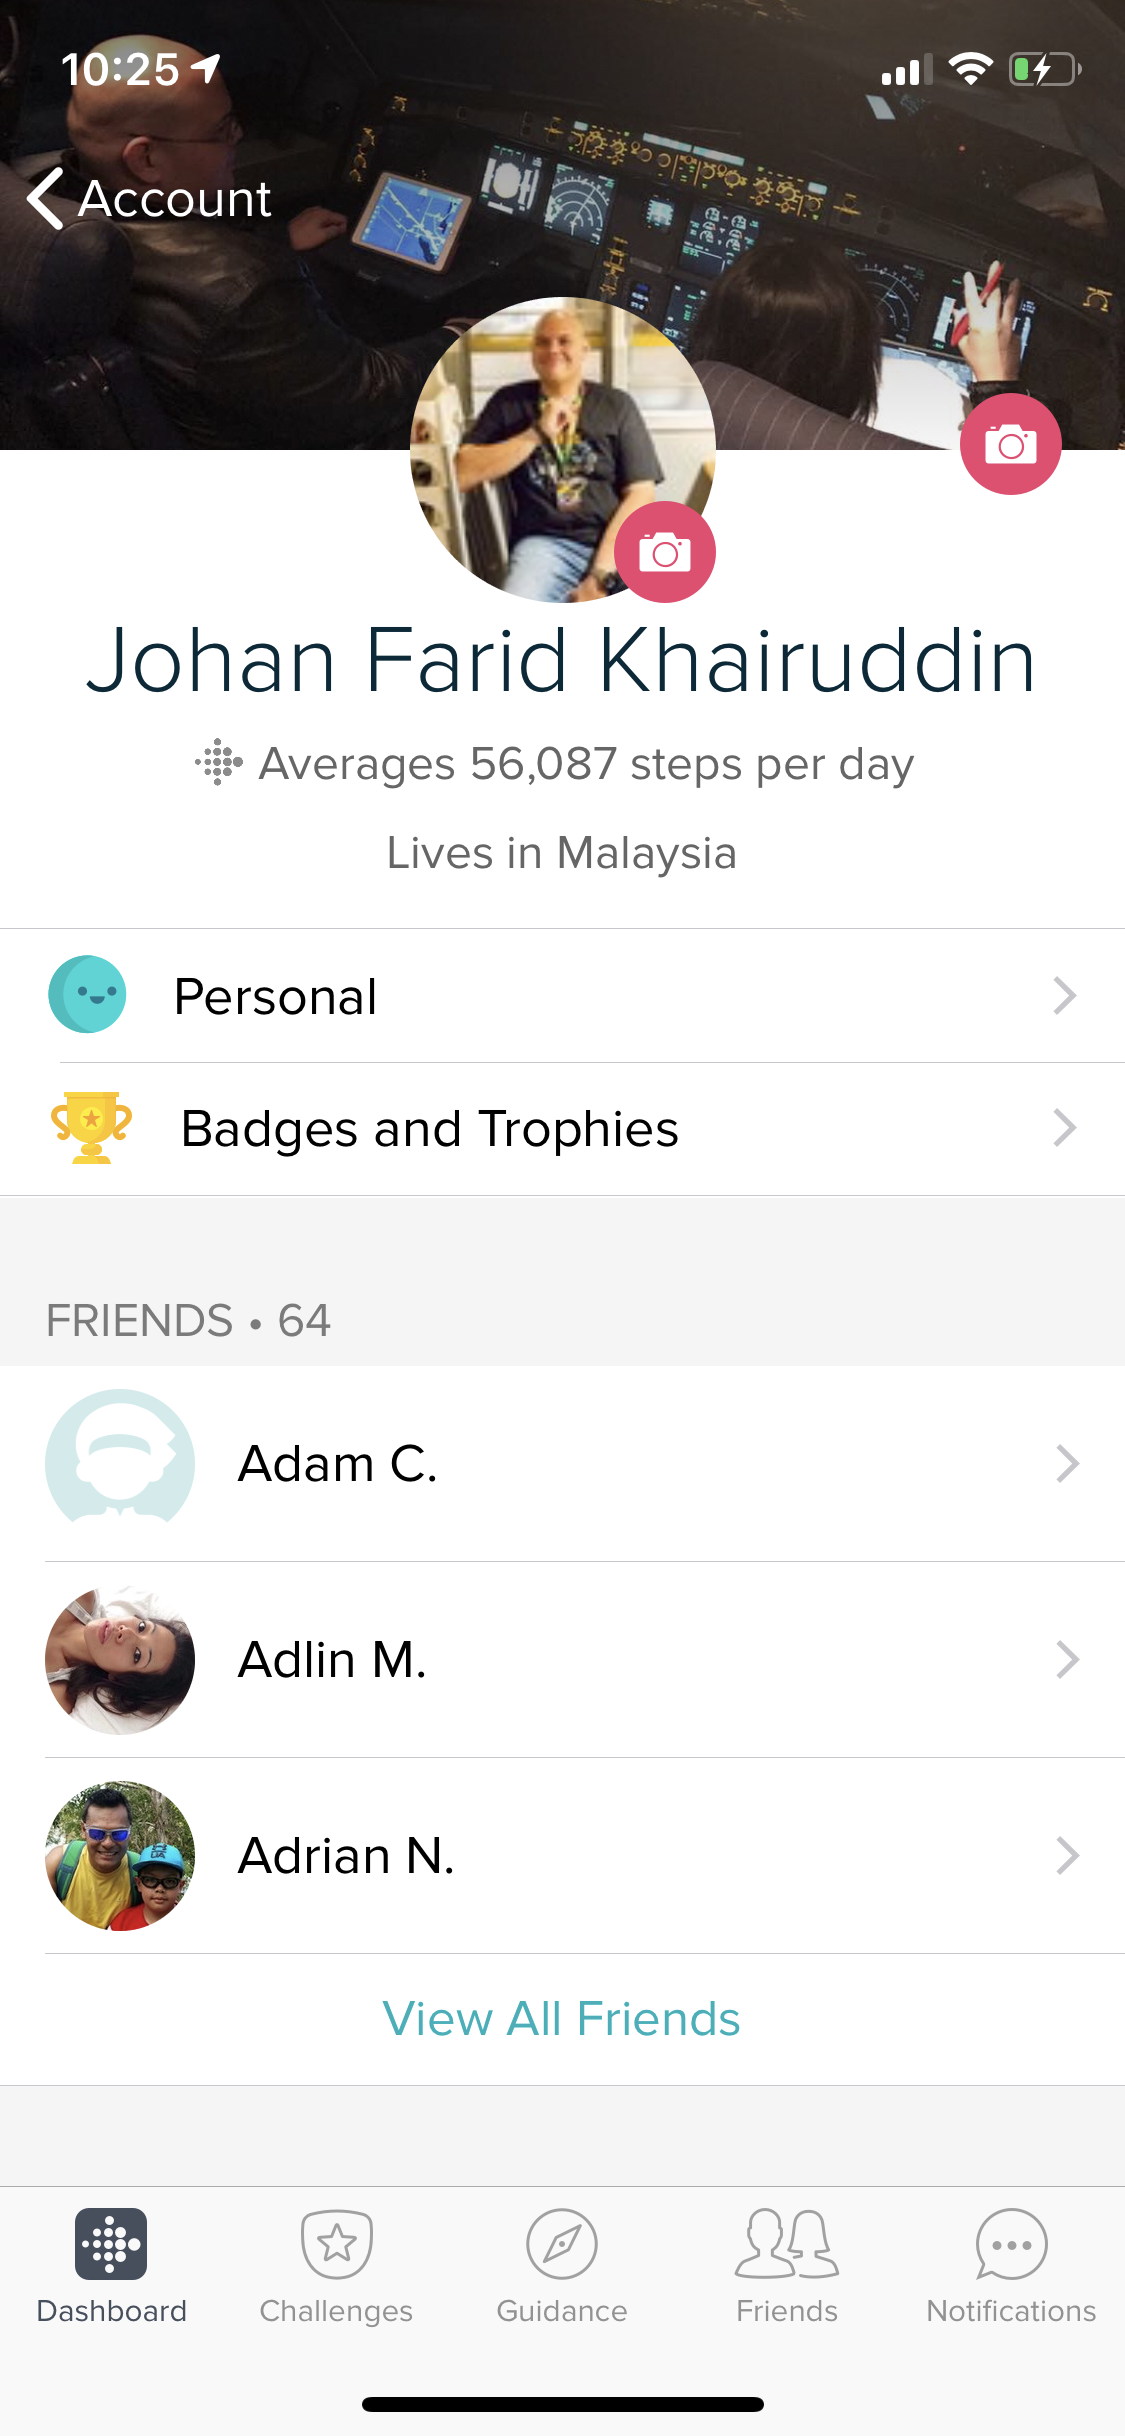 Old notifications still showing on Fitbit app - Fitbit Community